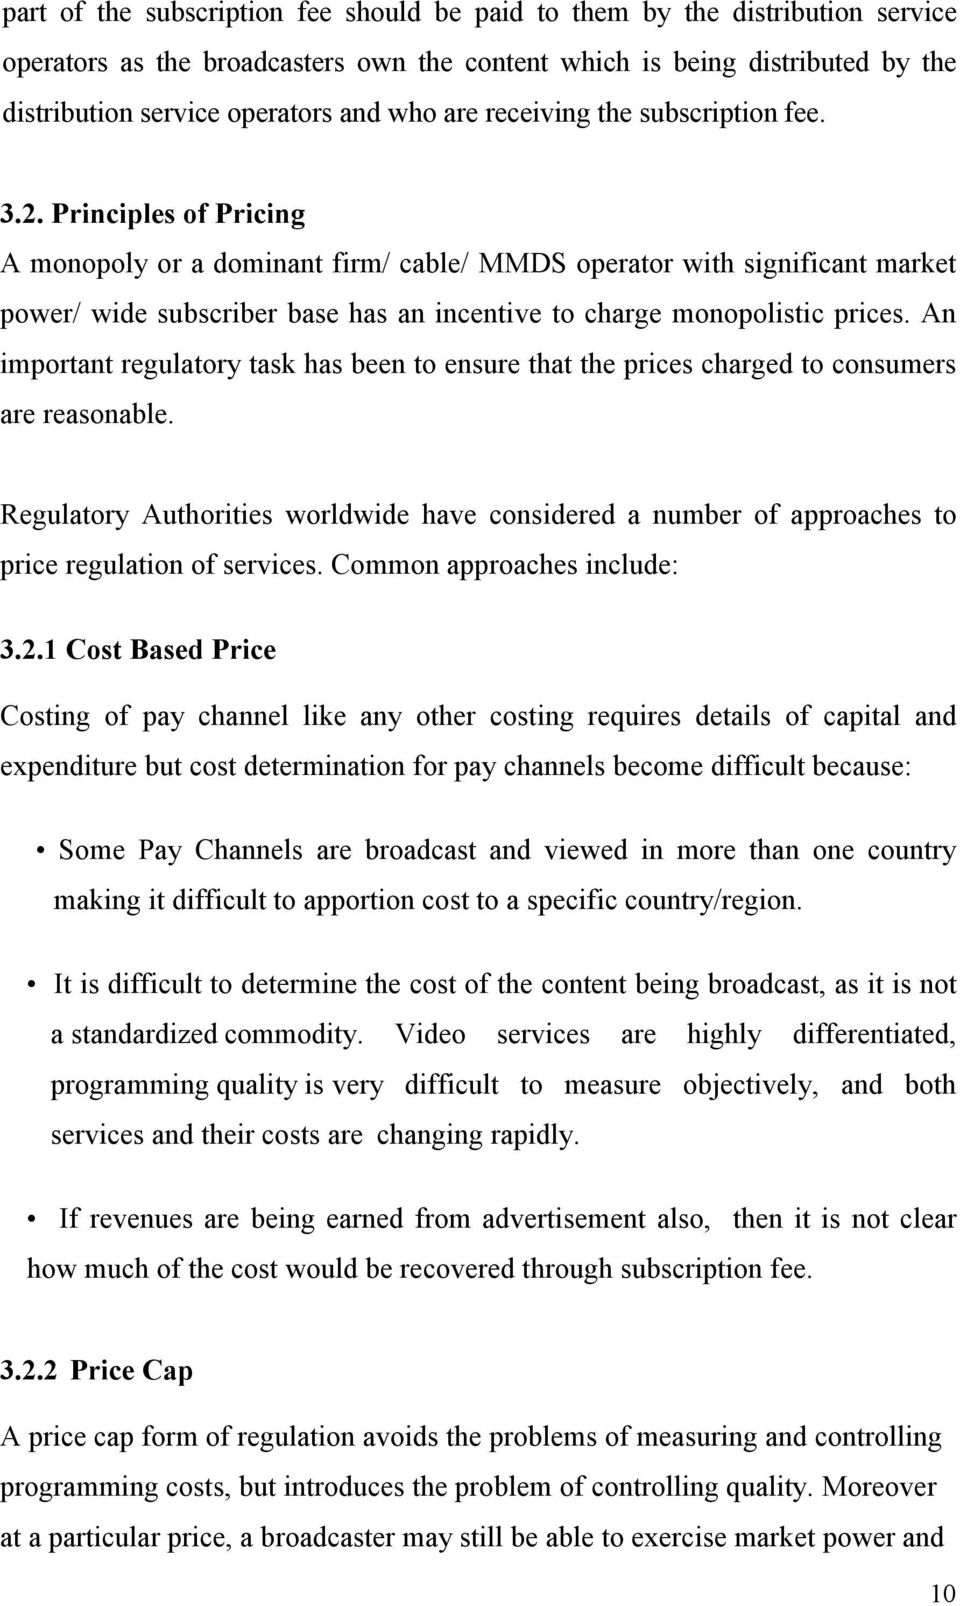 Principles of Pricing A monopoly or a dominant firm/ cable/ MMDS operator with significant market power/ wide subscriber base has an incentive to charge monopolistic prices.